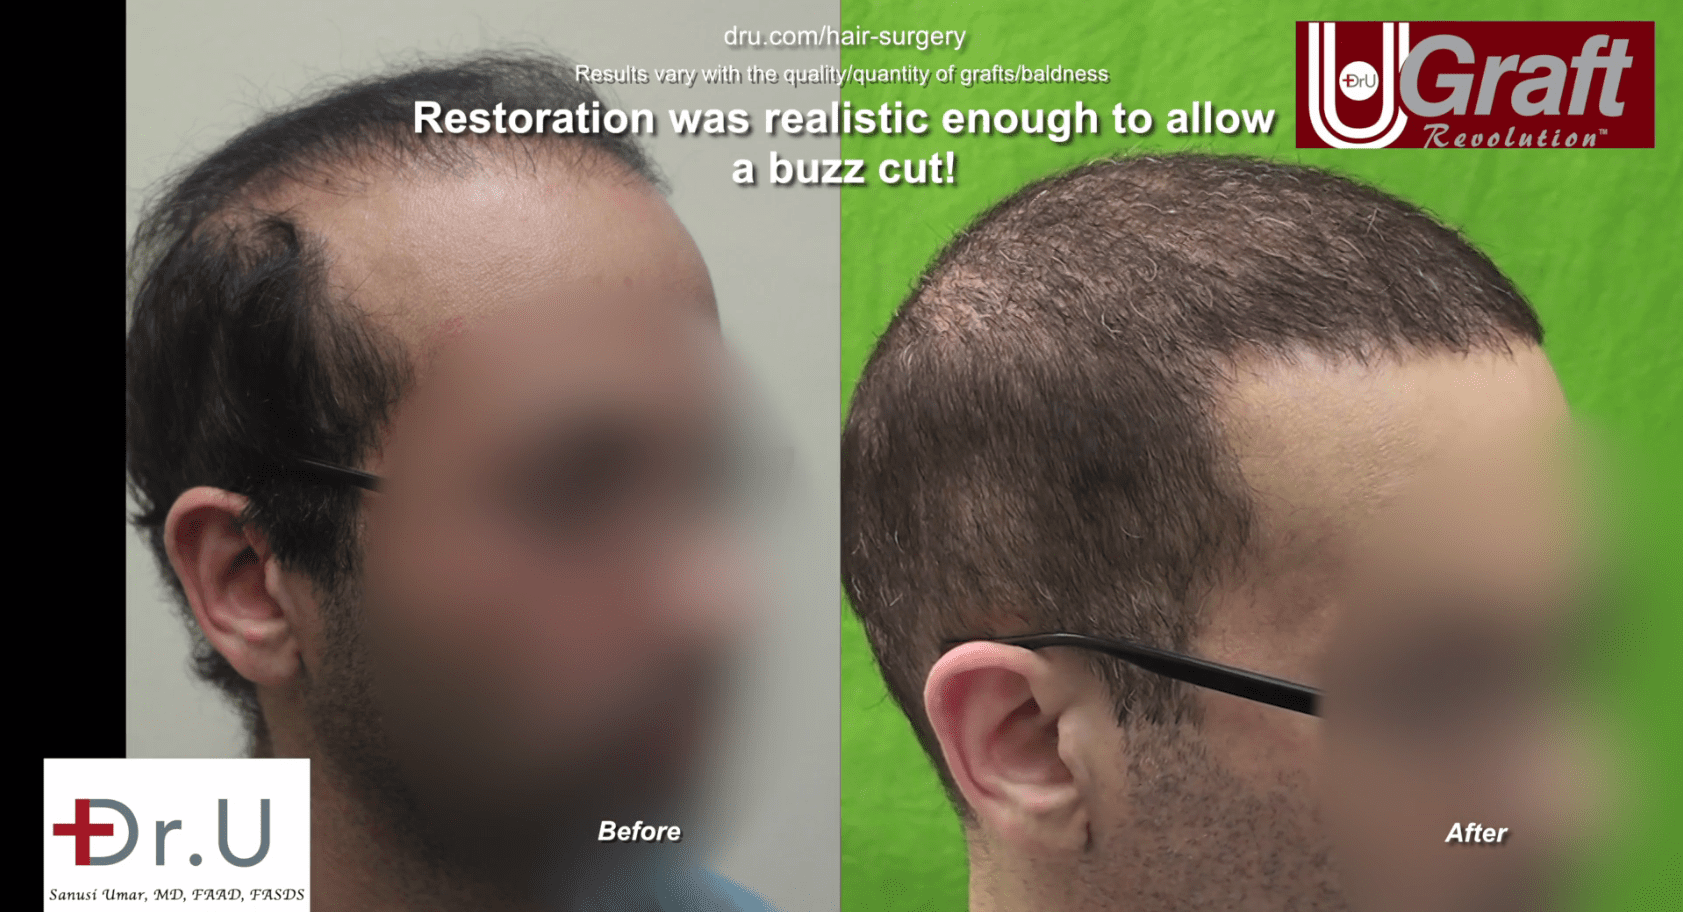 After his hair transplant surgery by Dr. U in Los Angeles, this patient now has filled in temples and a more prominent hairline